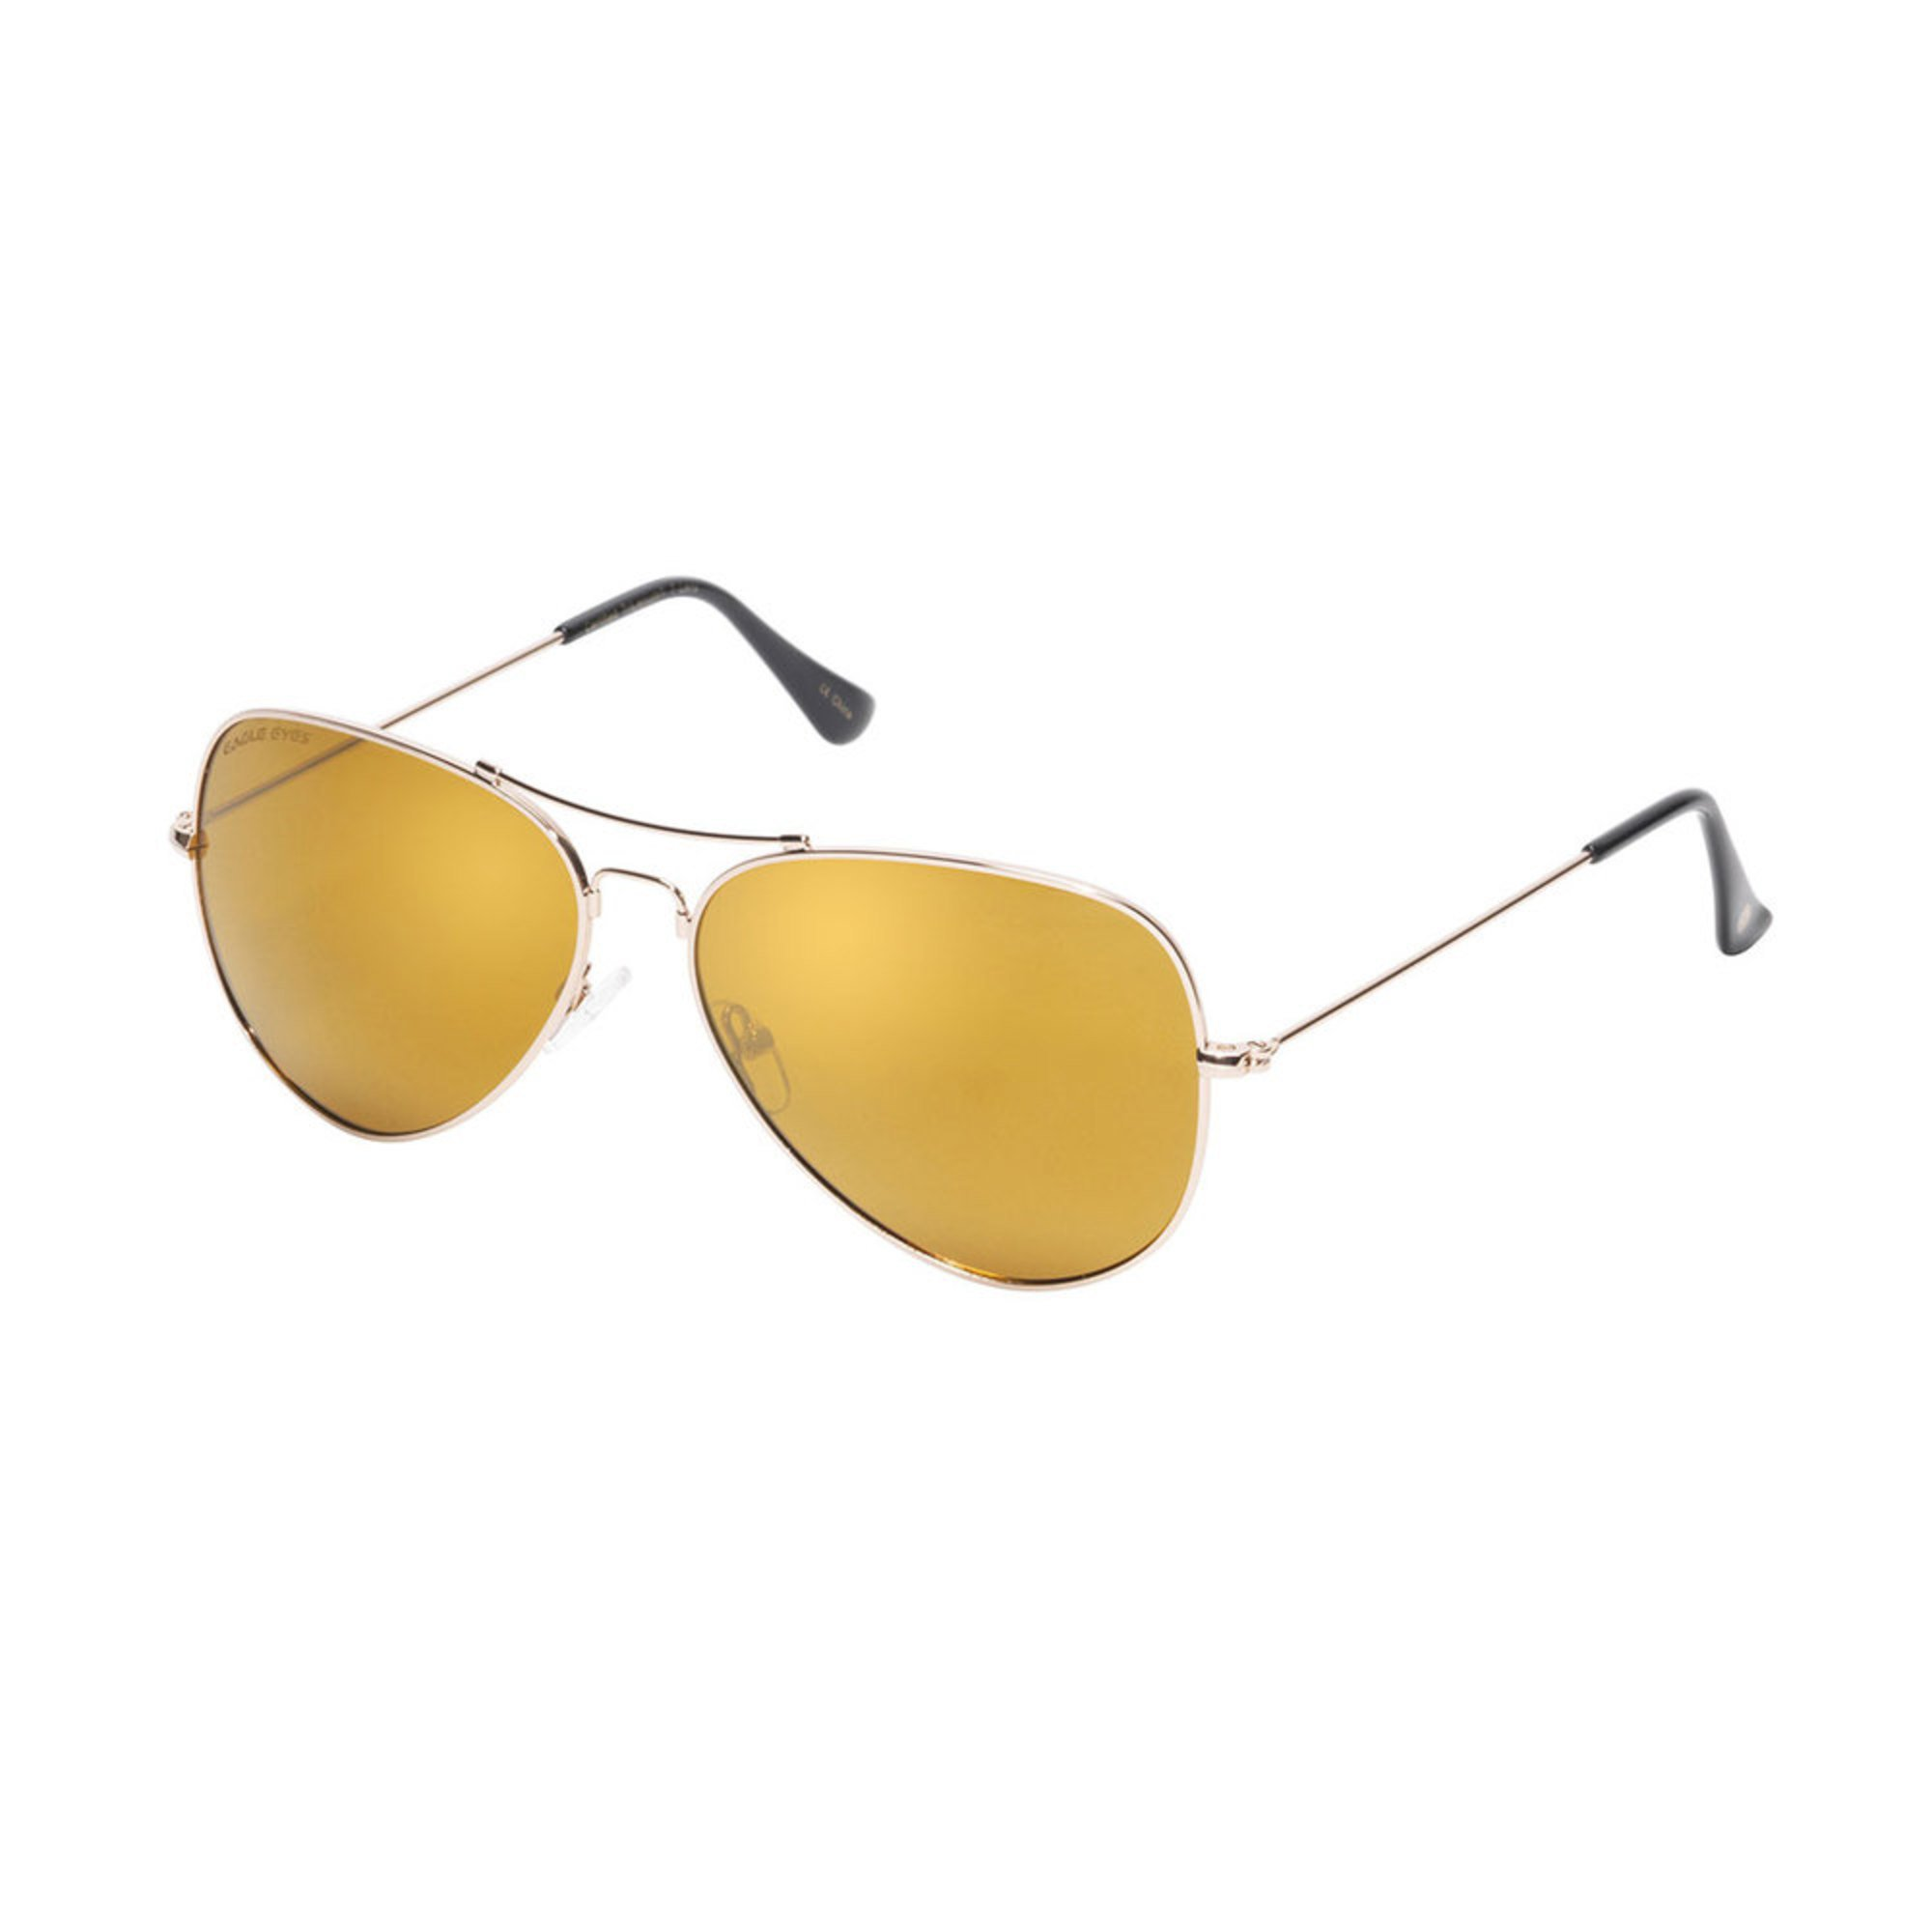 8dcd471ed0 Eagle Eyes. Eagle Eyes Unisex Polarized Aviator Memory Flex Sunglasses